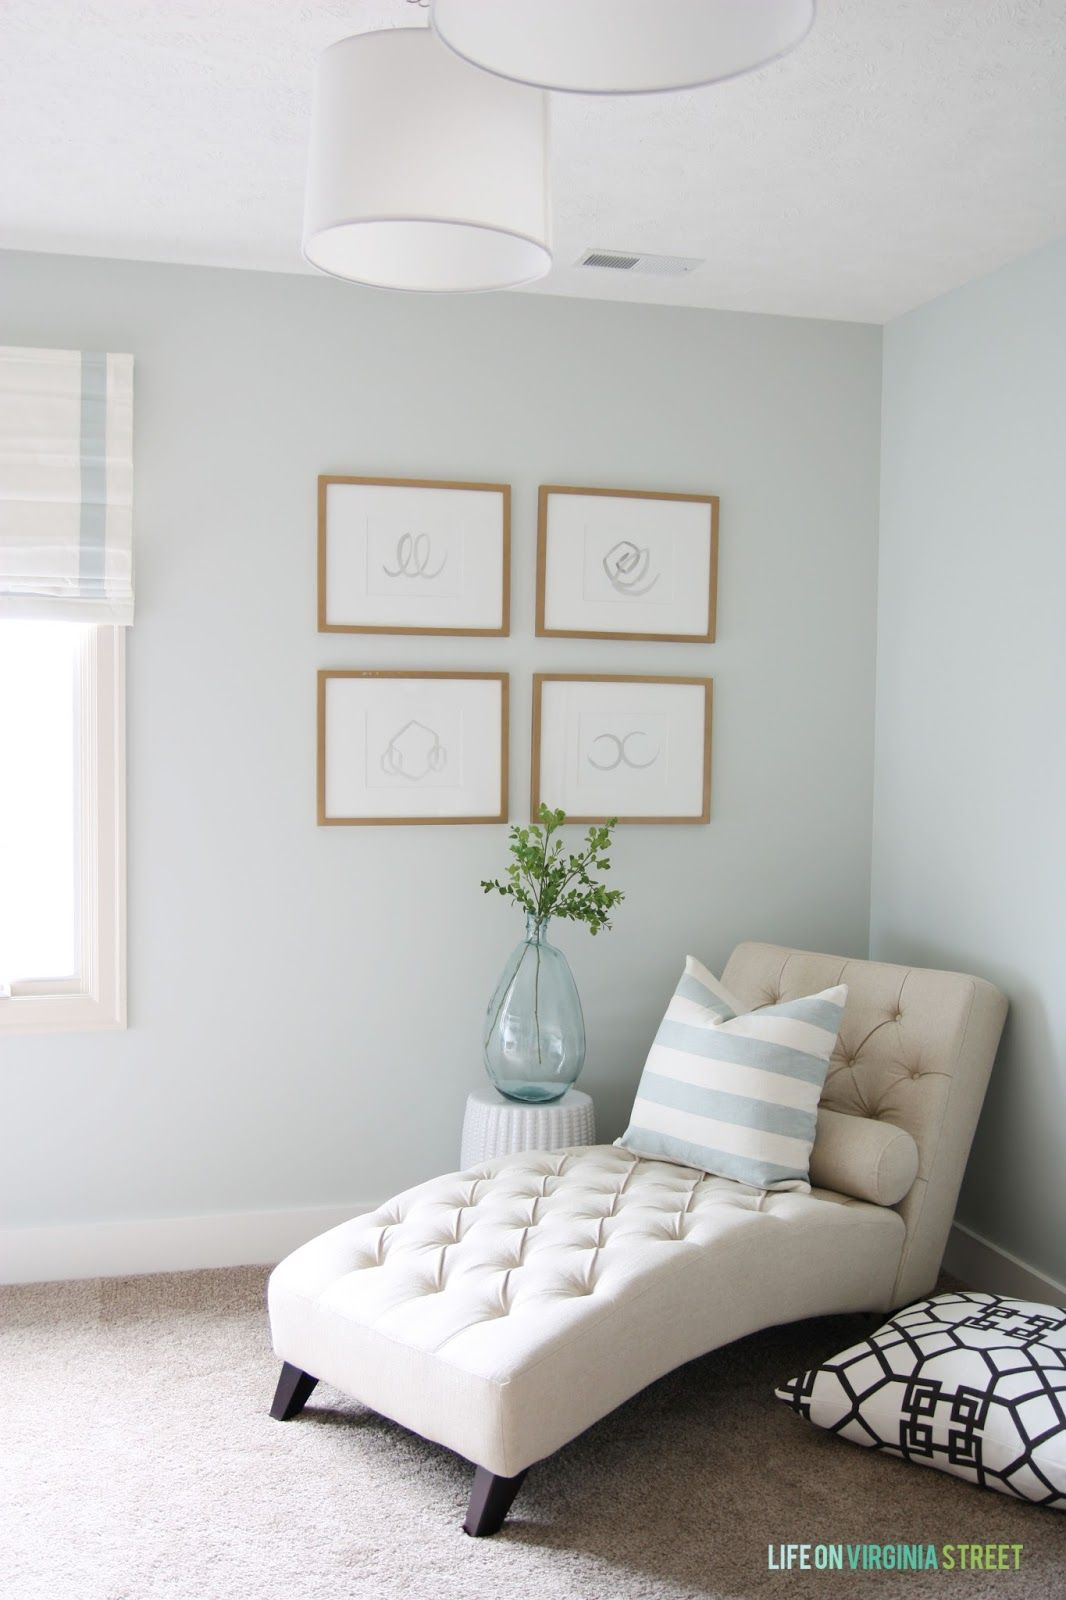 Best Benjamin Moore Colors For Master Bedroom Style Collection photo library of paint colors | benjamin moore, aloe and chaise